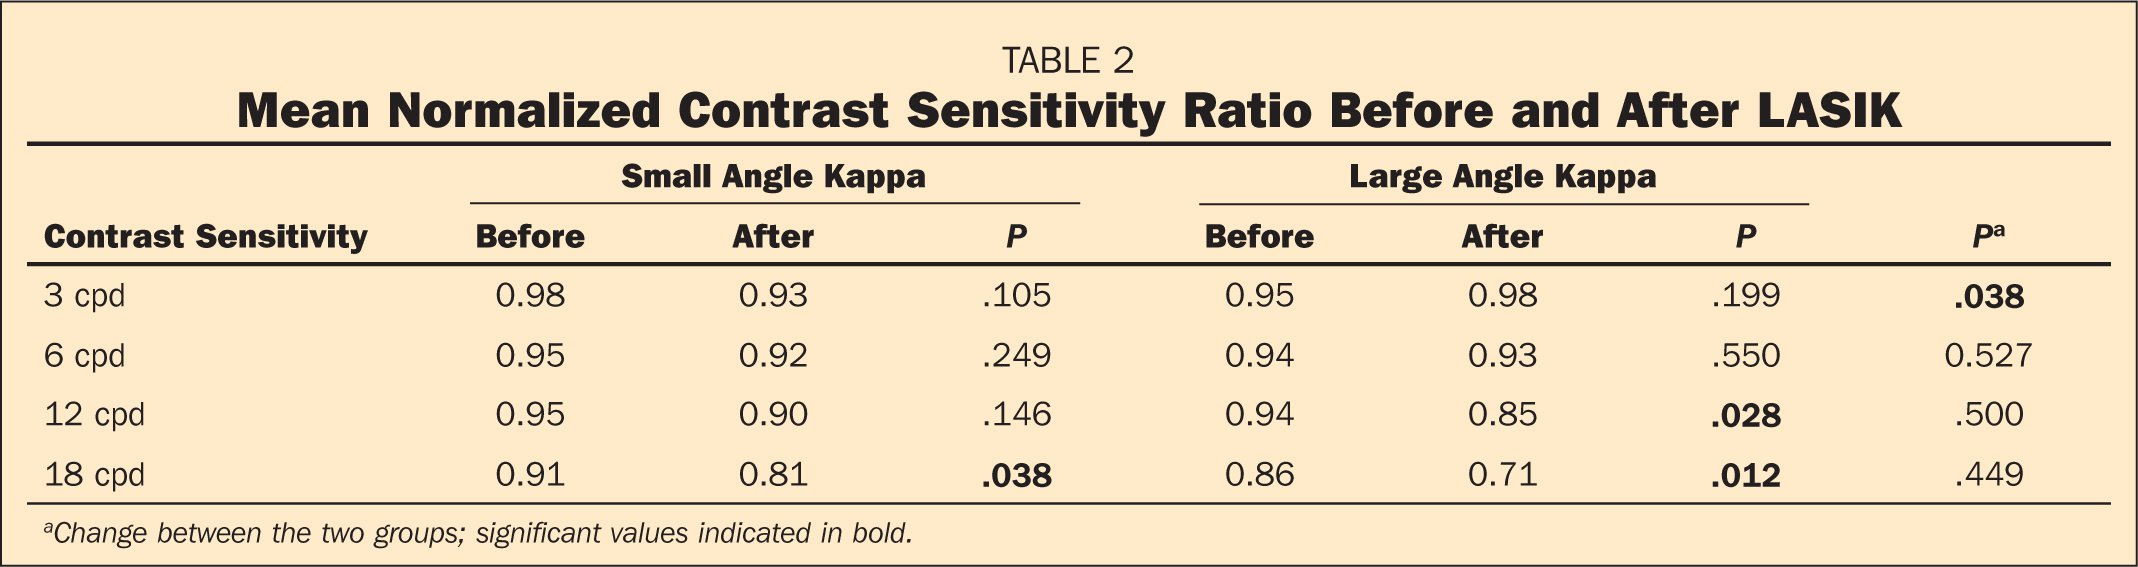 Mean Normalized Contrast Sensitivity Ratio Before and After LASIK